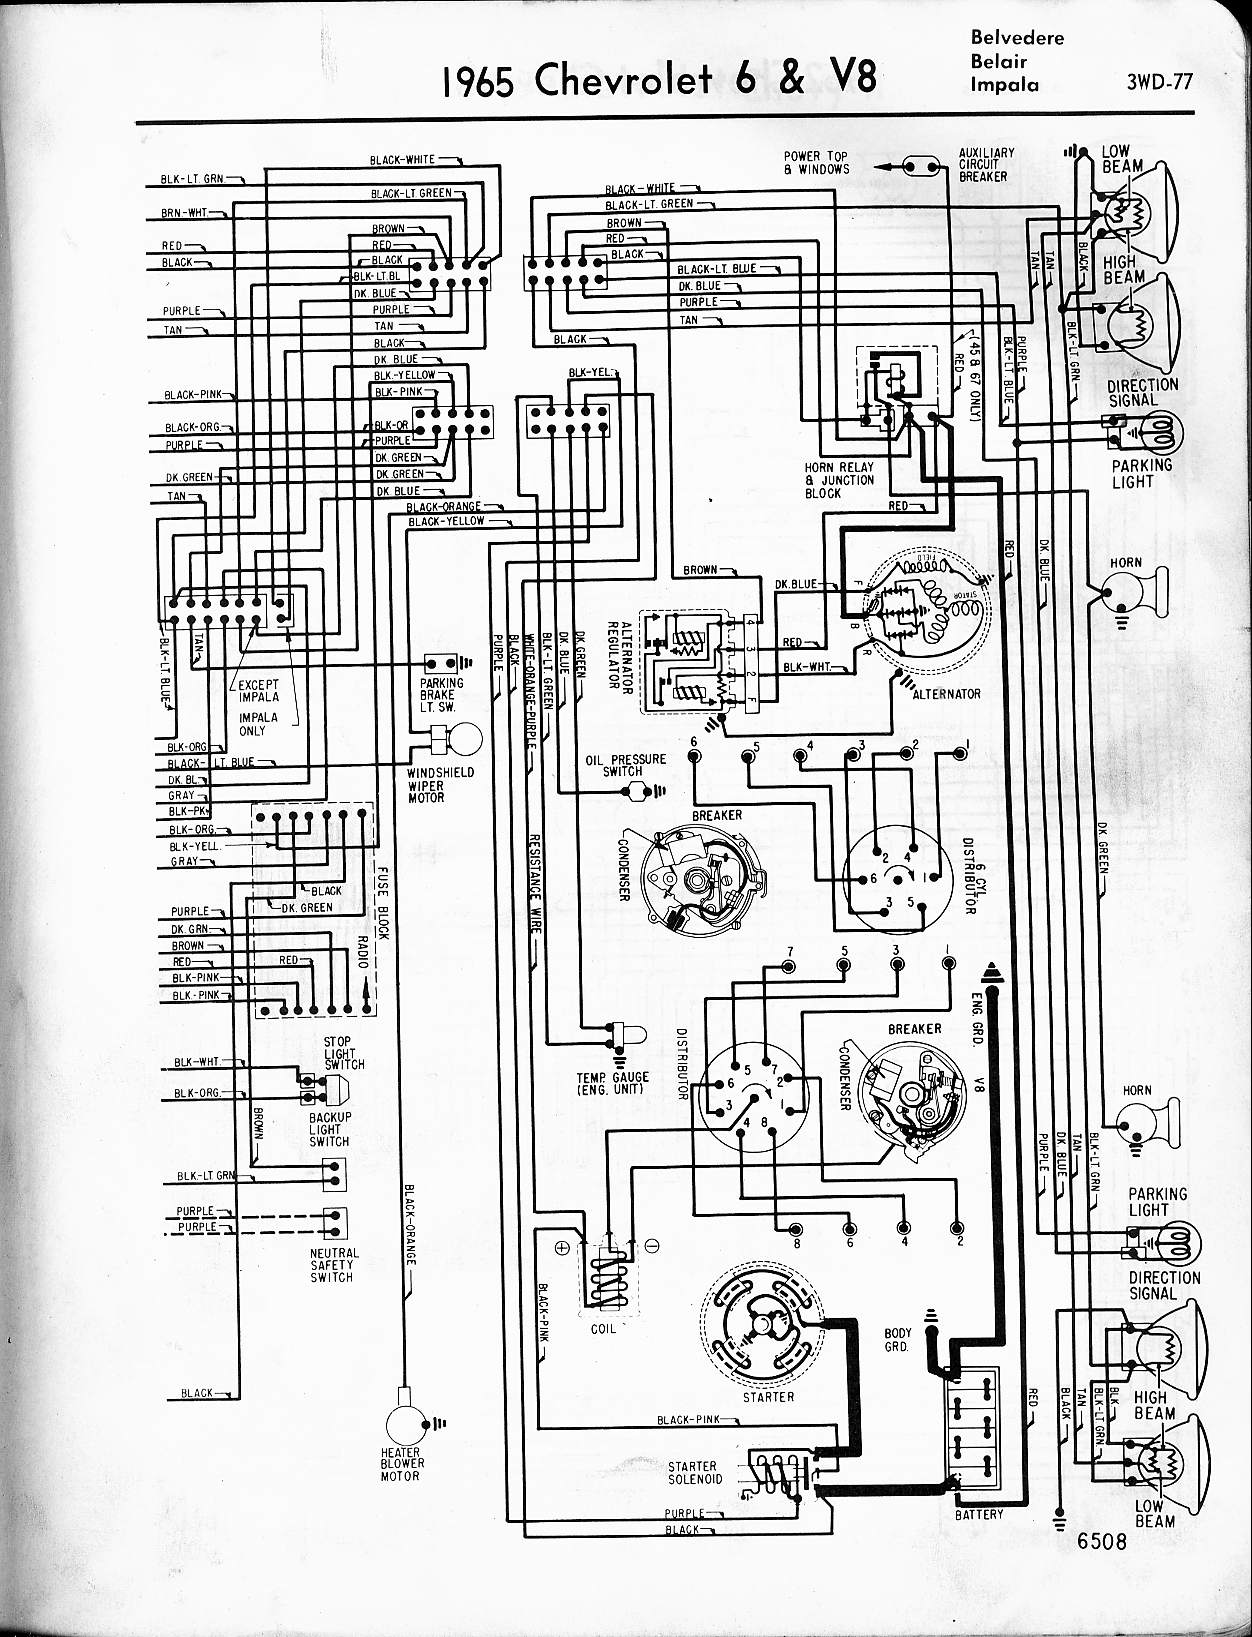 MWireChev65_3WD 077 57 65 chevy wiring diagrams 1965 chevy truck wiring harness at alyssarenee.co